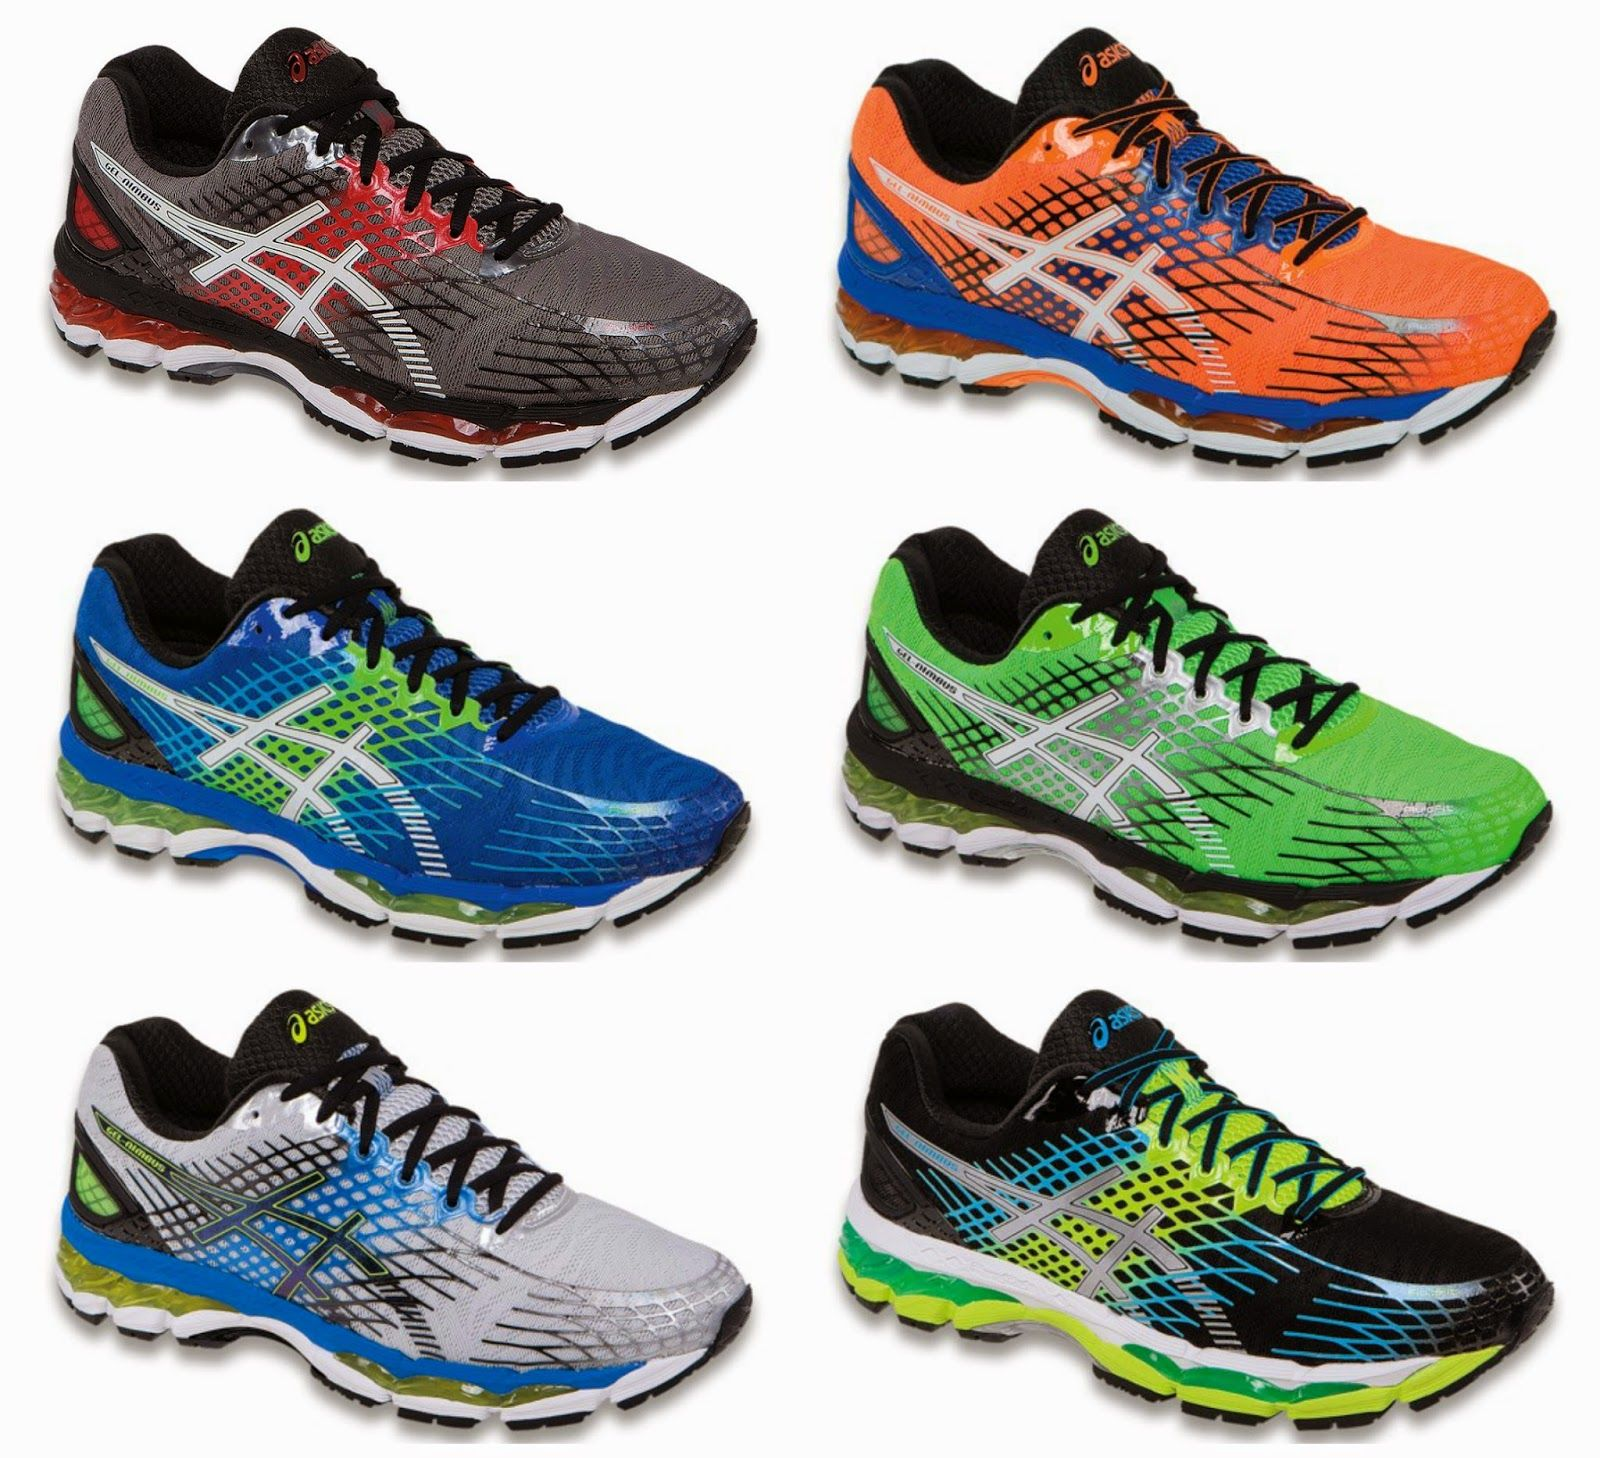 Men s colors - ASICS GEL Nimbus 17 review by  I Run 4 Wine.   shoes  runner   running 8c3985a54db29